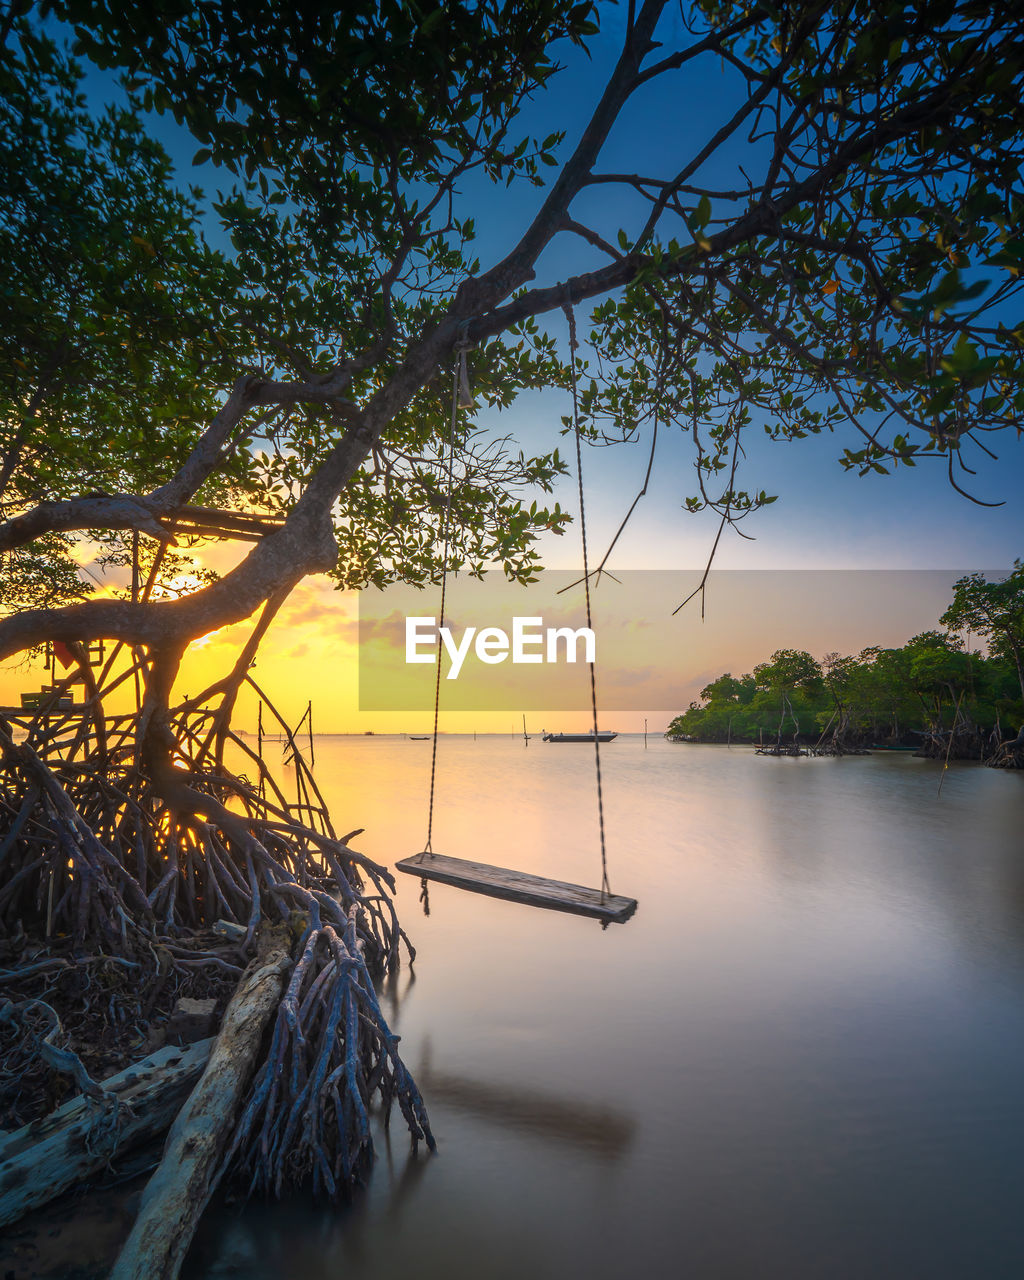 tree, water, plant, sky, nature, no people, tranquility, tranquil scene, beauty in nature, scenics - nature, sunset, growth, non-urban scene, lake, reflection, outdoors, sunlight, branch